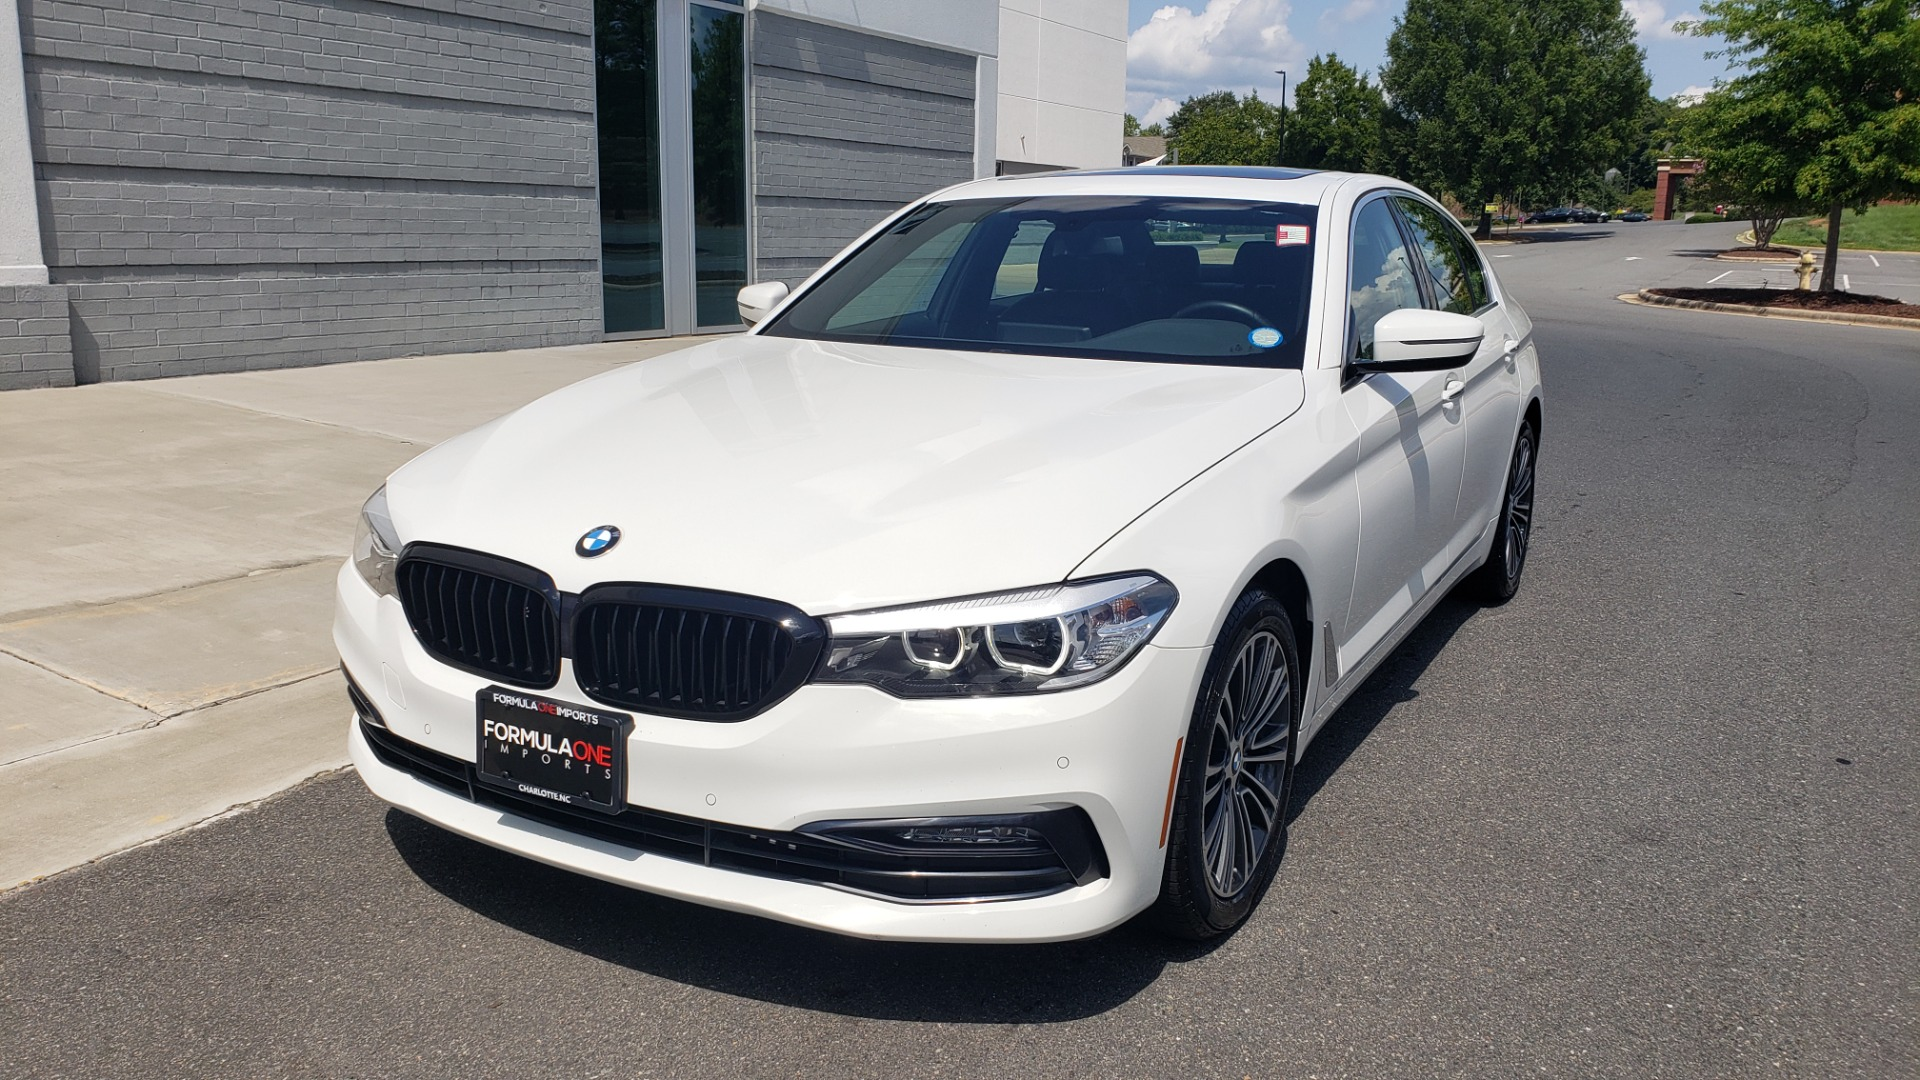 Used 2018 BMW 5 SERIES 530I XDRIVE PREMIUM / PARK ASST / NAV / SUNROOF / REARIEW for sale $37,795 at Formula Imports in Charlotte NC 28227 3